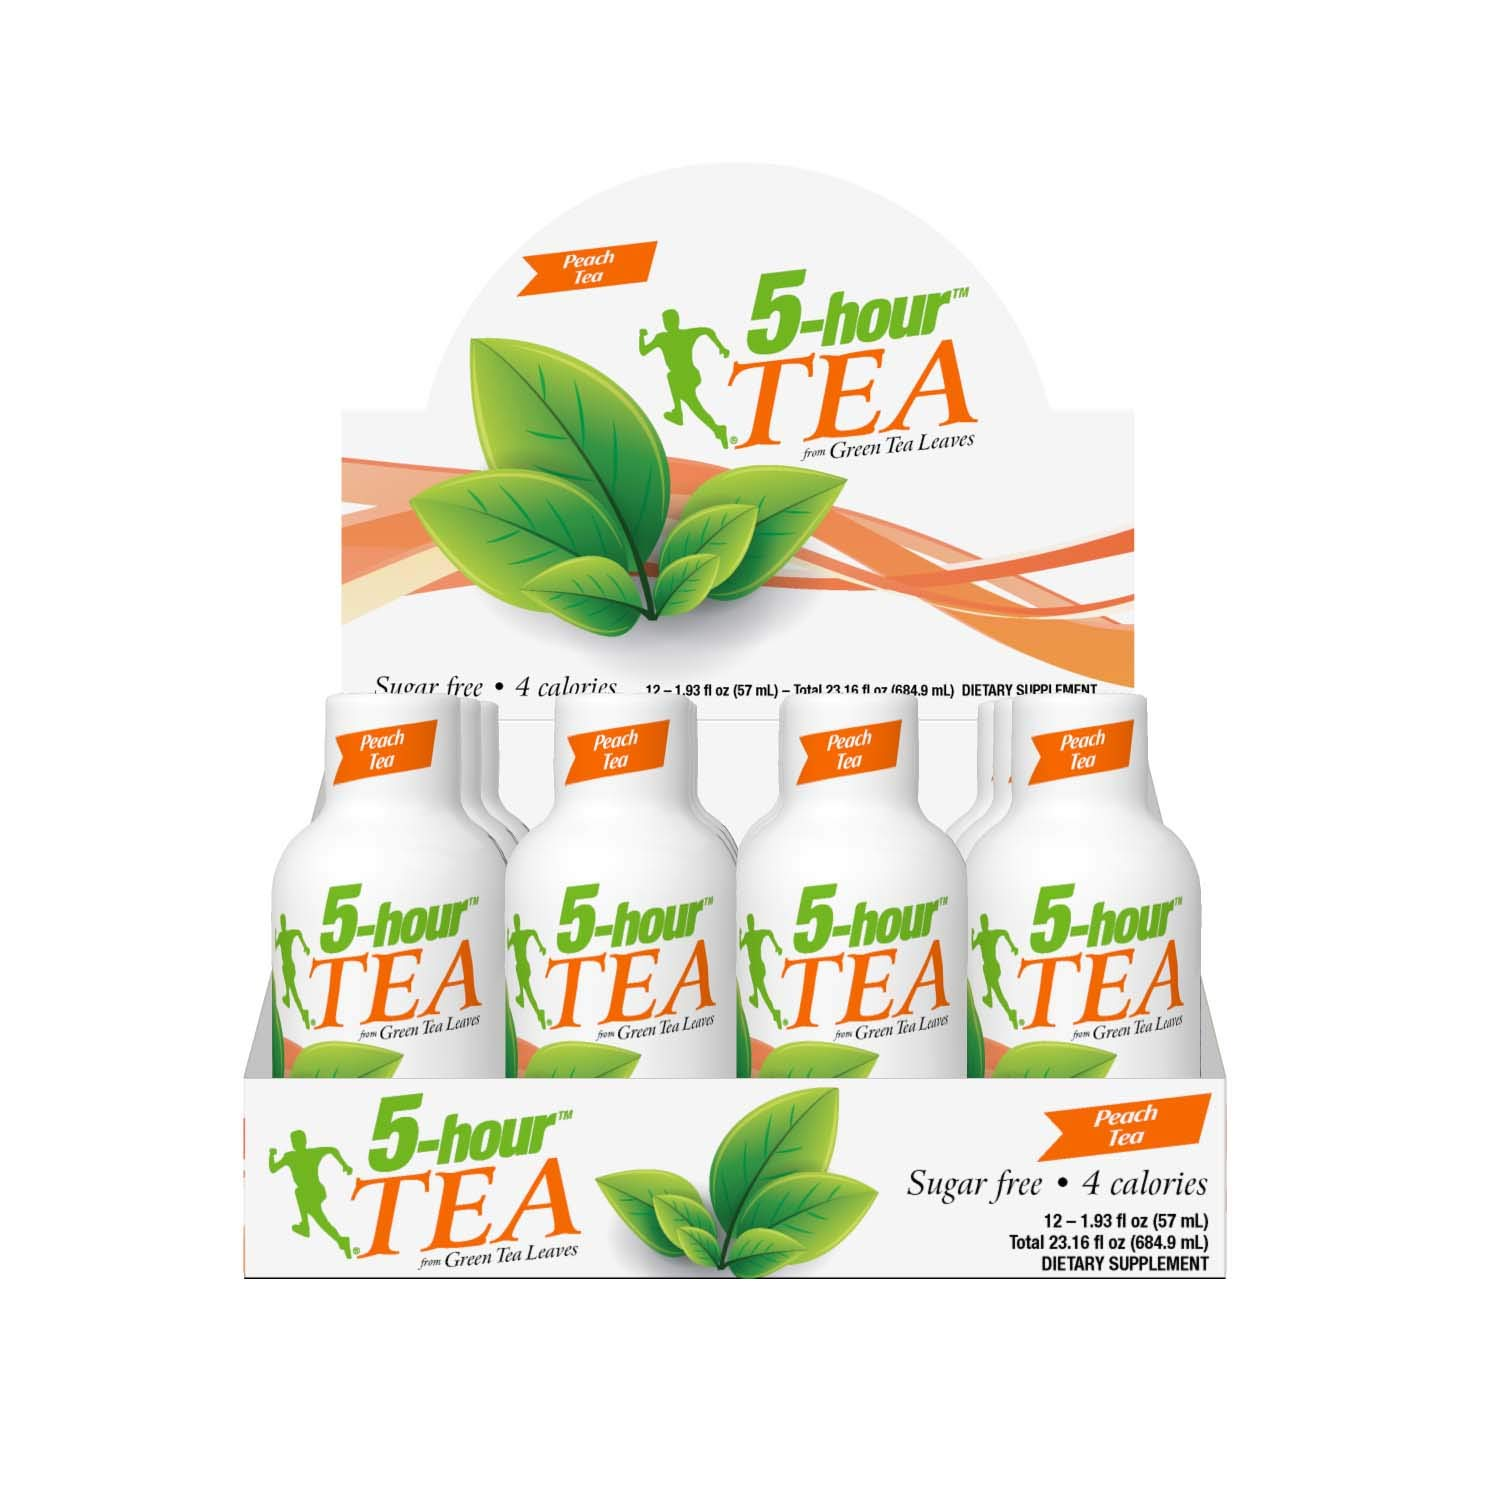 5-hour TEA, Peach Tea Flavored Energy Shots, 1.93 oz, 24 Count by 5-hour ENERGY (Image #4)